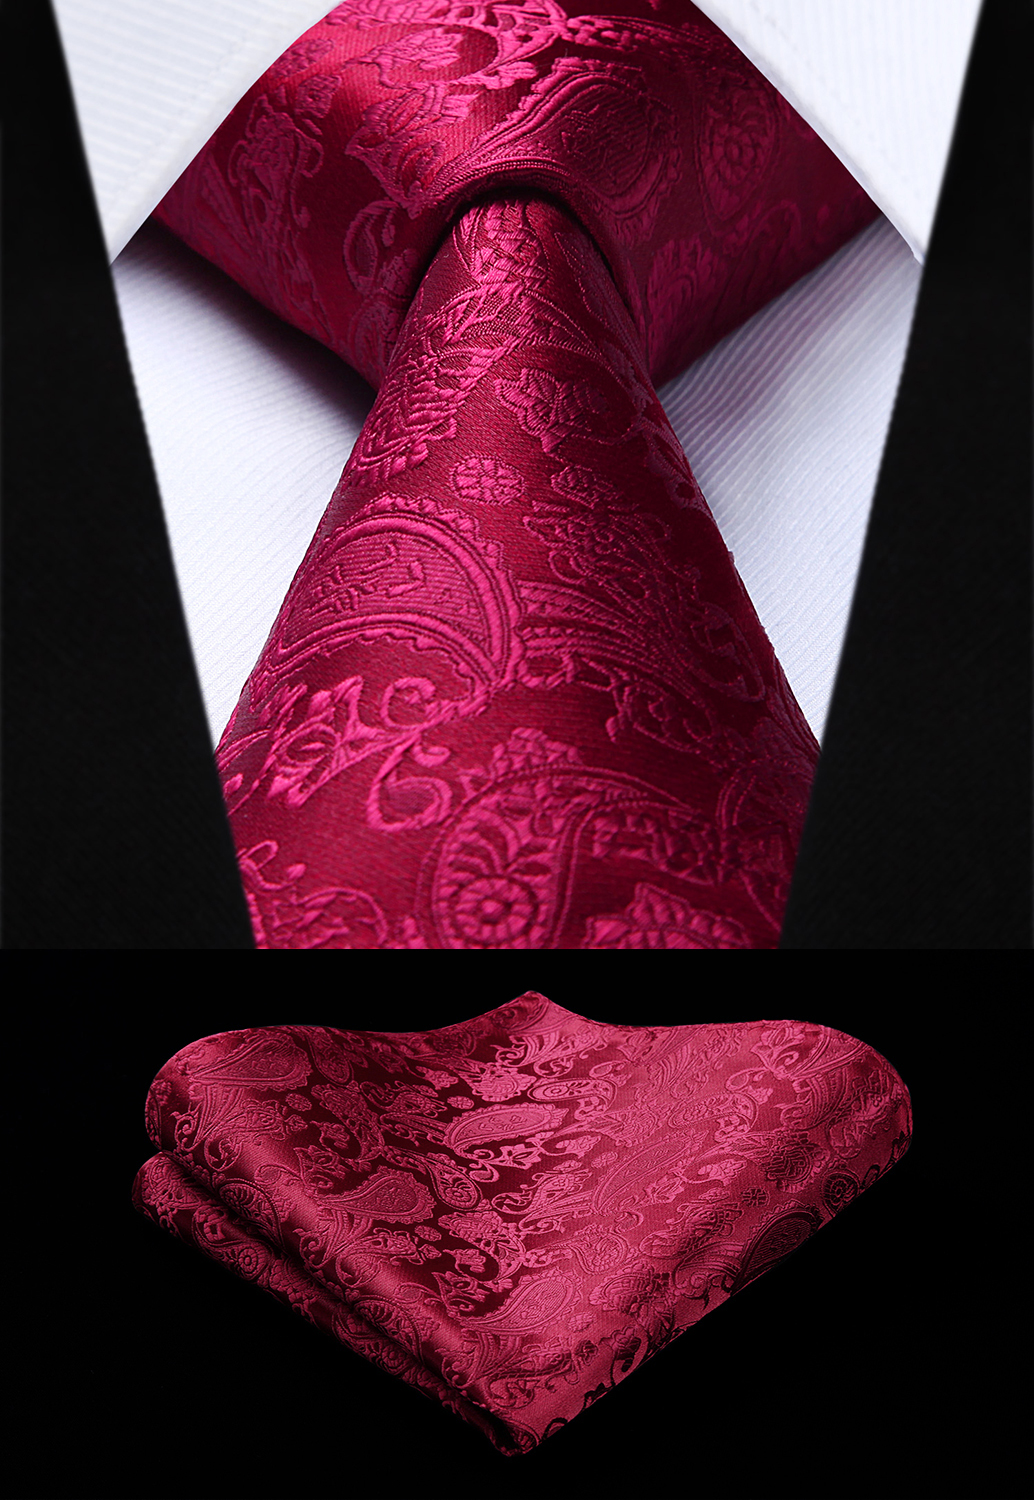 Party Wedding Classic Fashion Pocket Square Tie Woven Men Burgundy Tie Paisley Necktie Handkerchief Set#TP711U8S